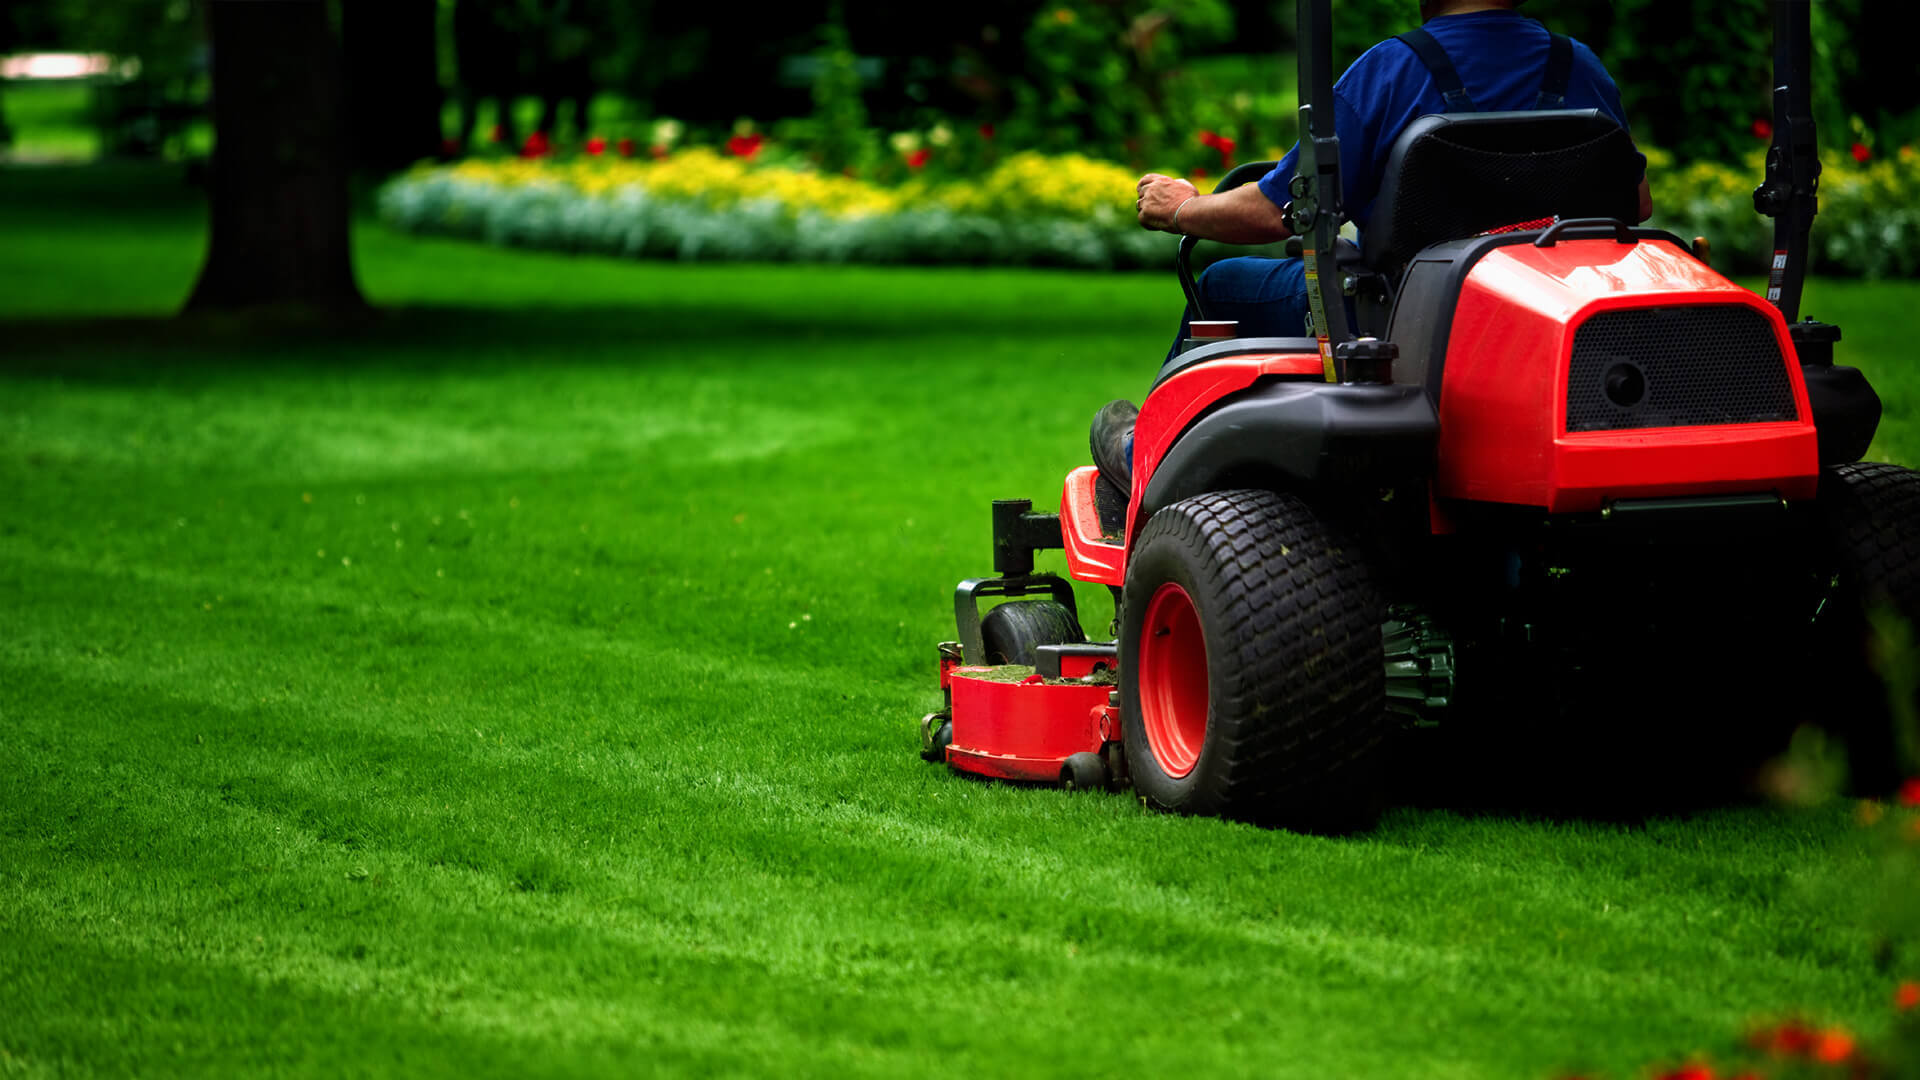 Best Riding Lawn Mowers For 1 Acre 2020